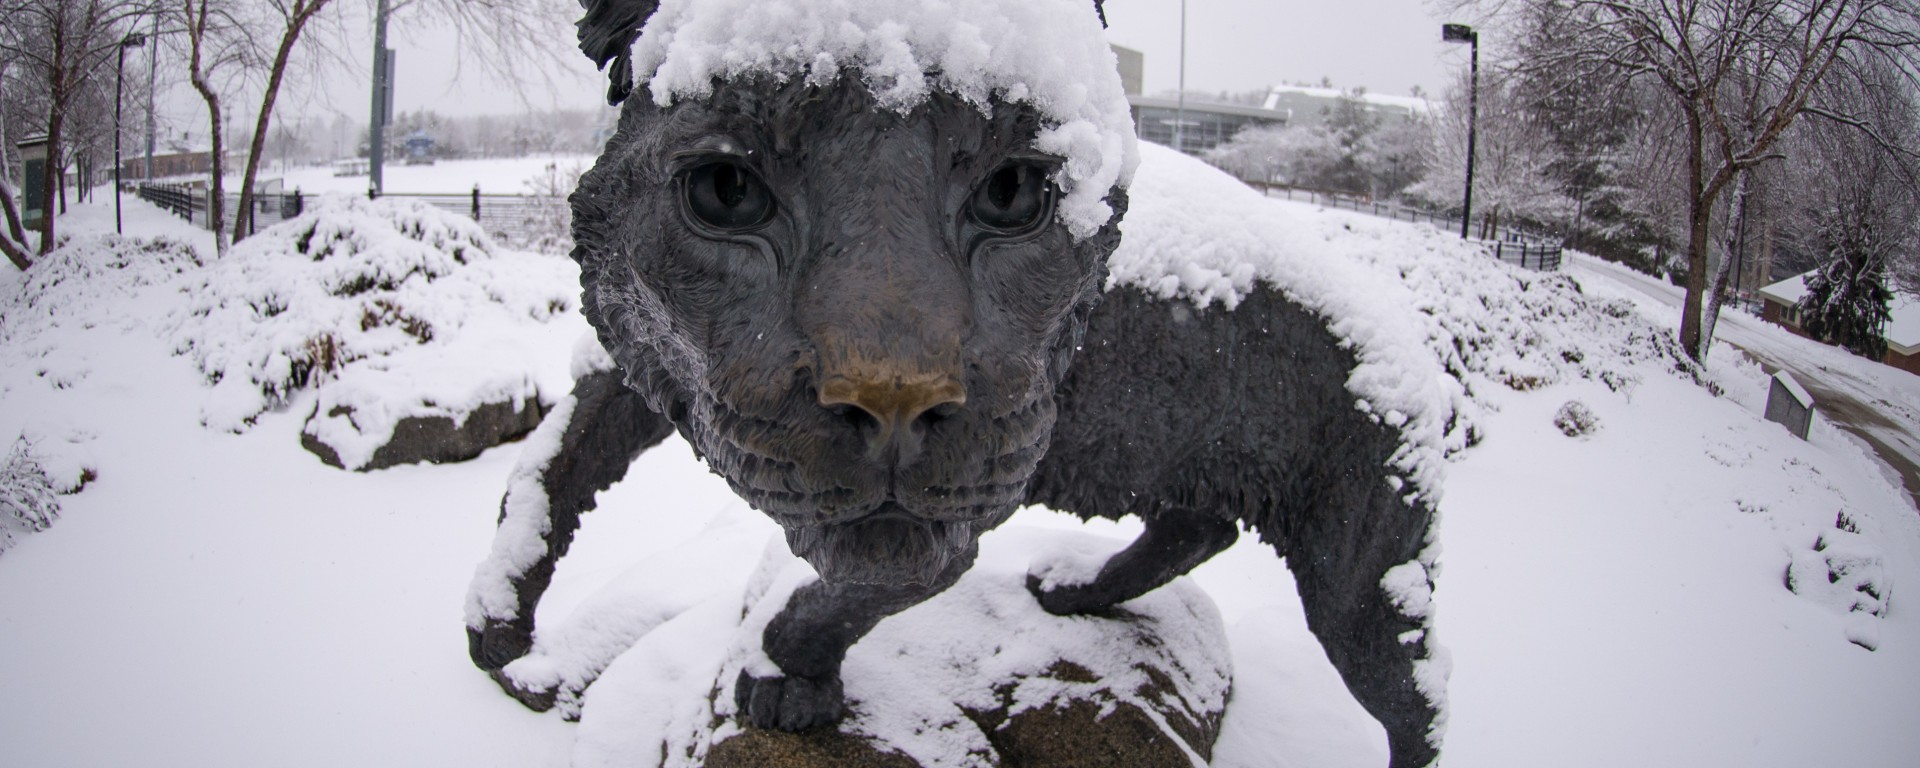 Wildcat statue covered in snow